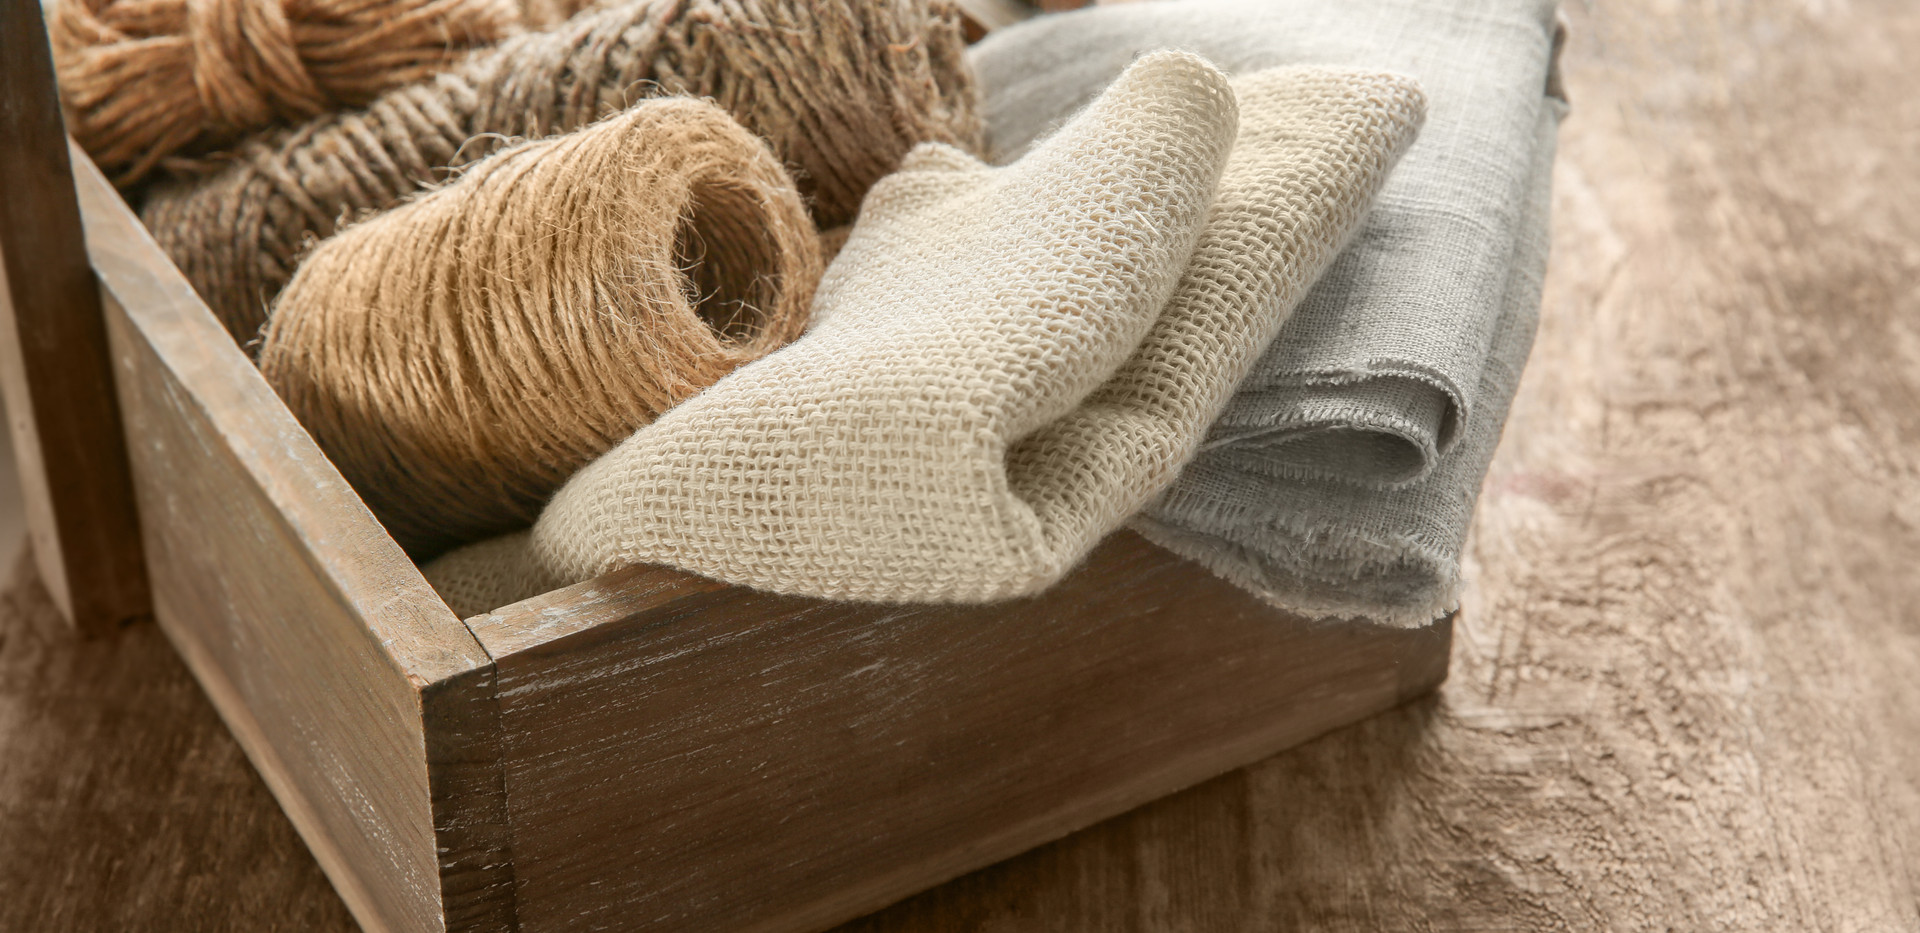 Hemp cloth and rope in crate on wooden b